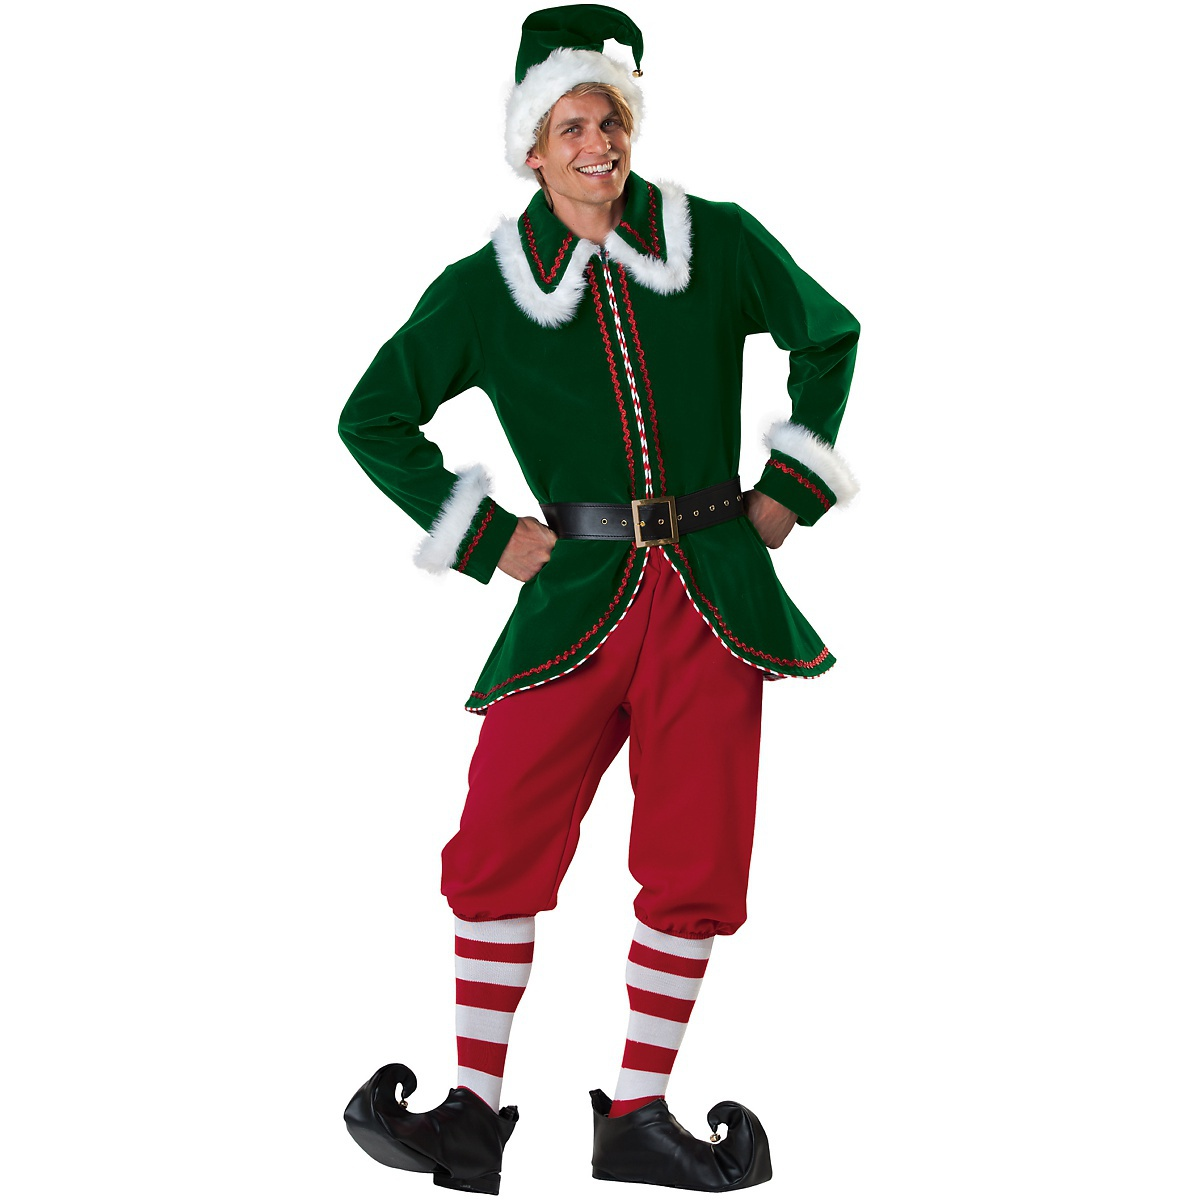 InCharacter Santa's Elf Adult Mens Claus's Helper Buddy Christmas Costume at Sears.com